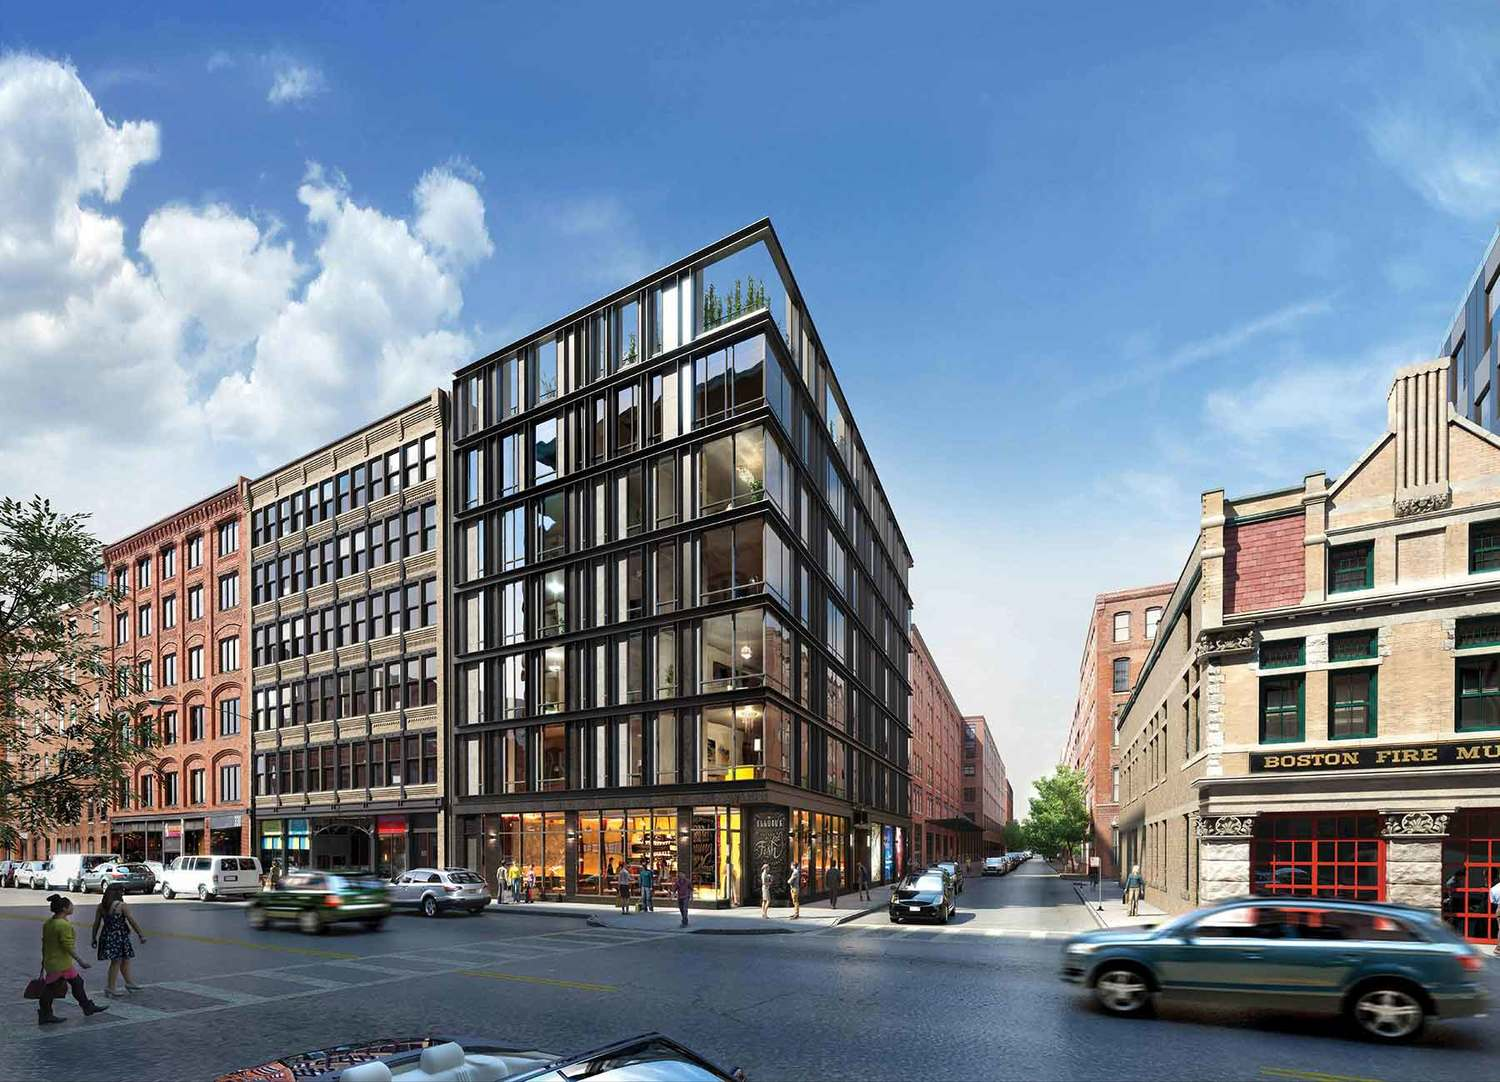 DEVELOPMENT ON HIGH-END FORT POINT CONDOS EXPECTED TO START IN JUNE - TCR Development is gearing up to start construction this summer on 10 Farnsworth, an ultra-luxury boutique condominium project at 338 Congress St. in Fort Point.